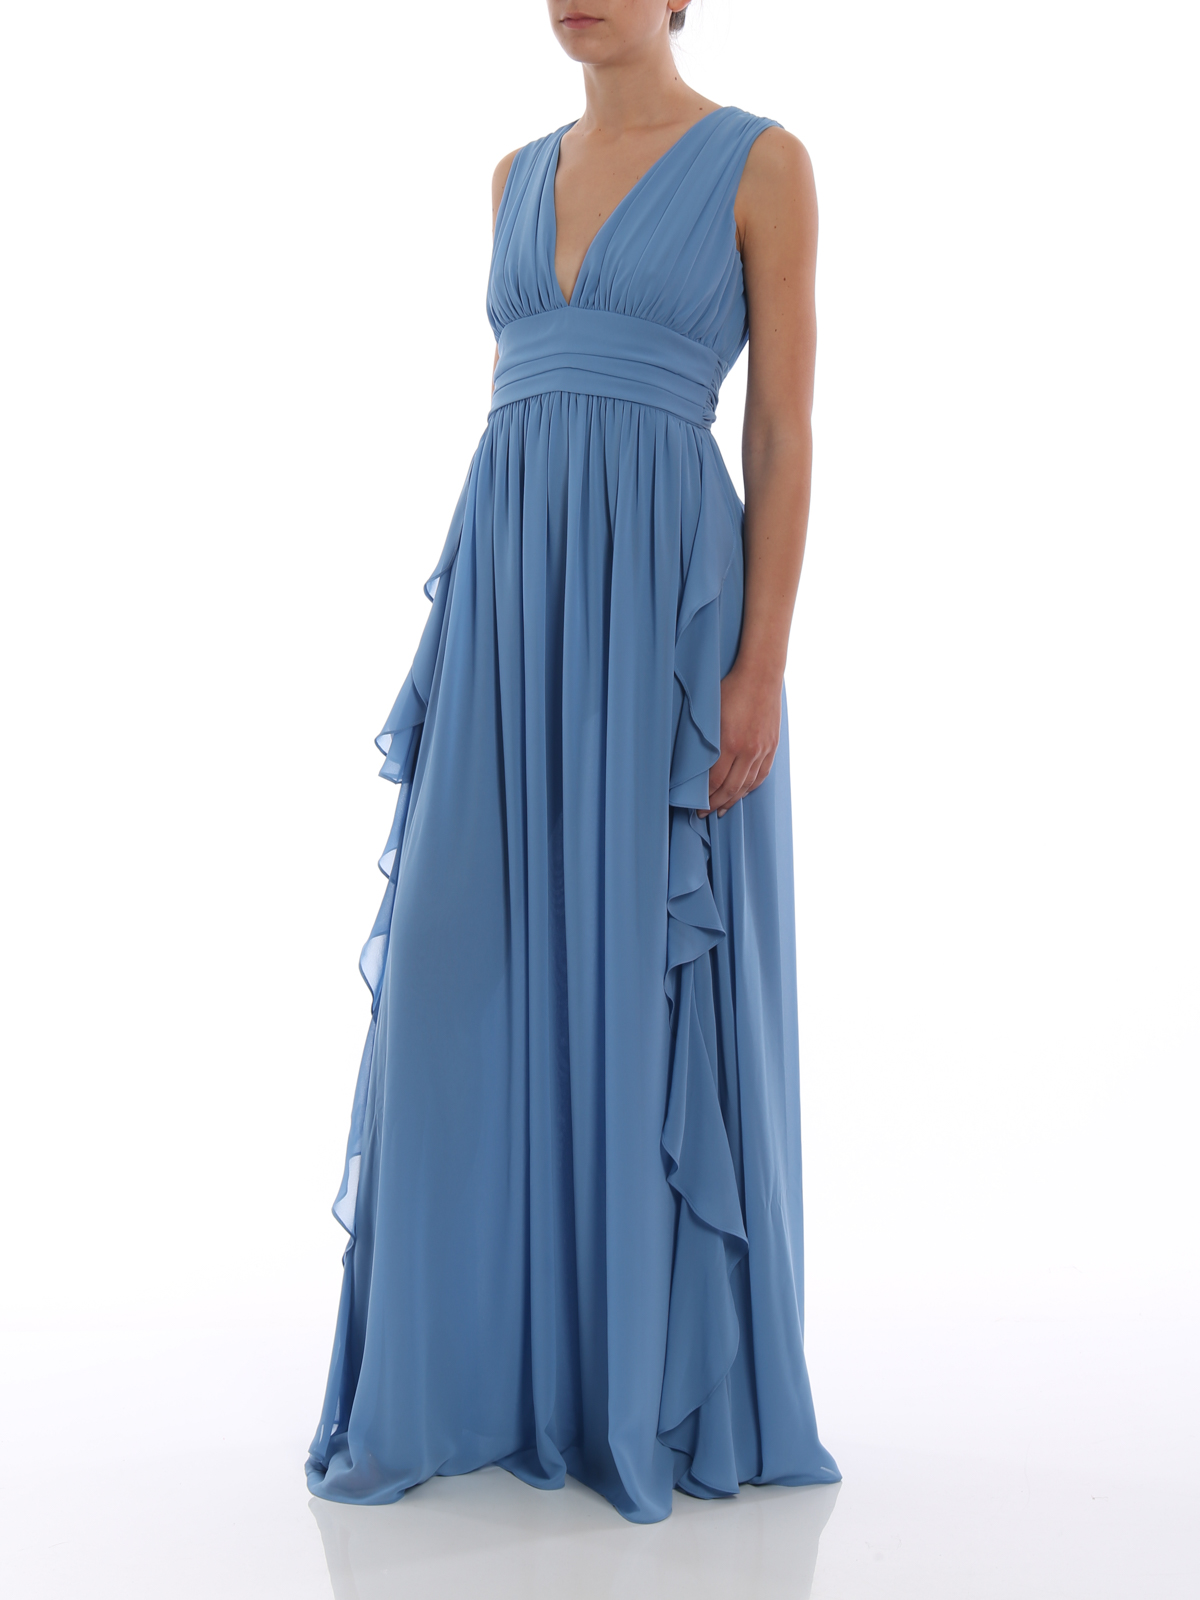 Light blue frilled empire dress by Paolo Fiorillo Capri cocktail